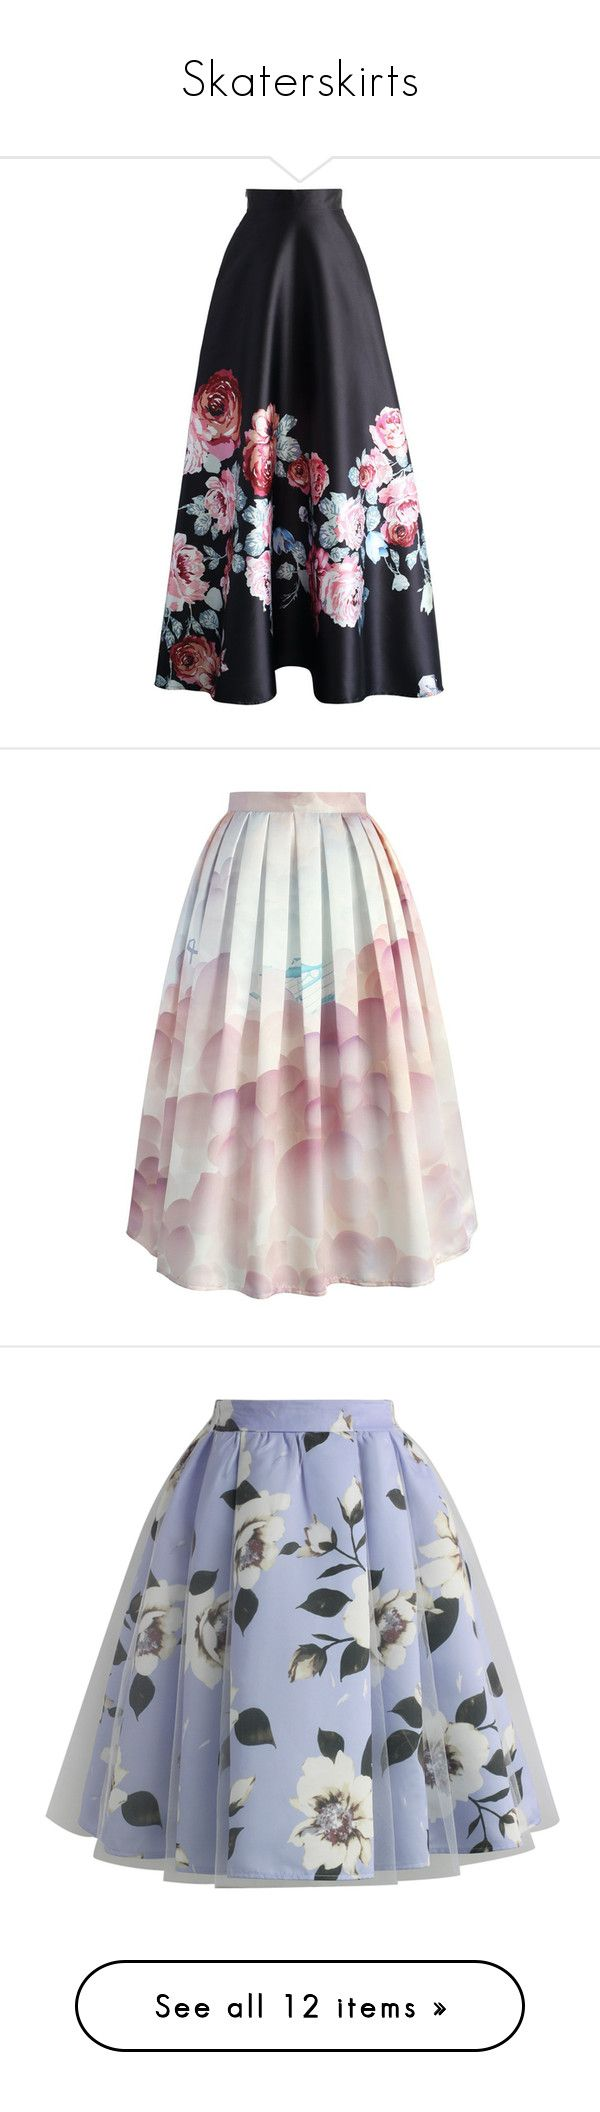 """Skaterskirts"" by craneberries on Polyvore featuring skirts, bottoms, long skirts, black, maxi skirt, long maxi skirts, floral print maxi skirt, floral maxi skirt, floor length skirt and rose print skirt"